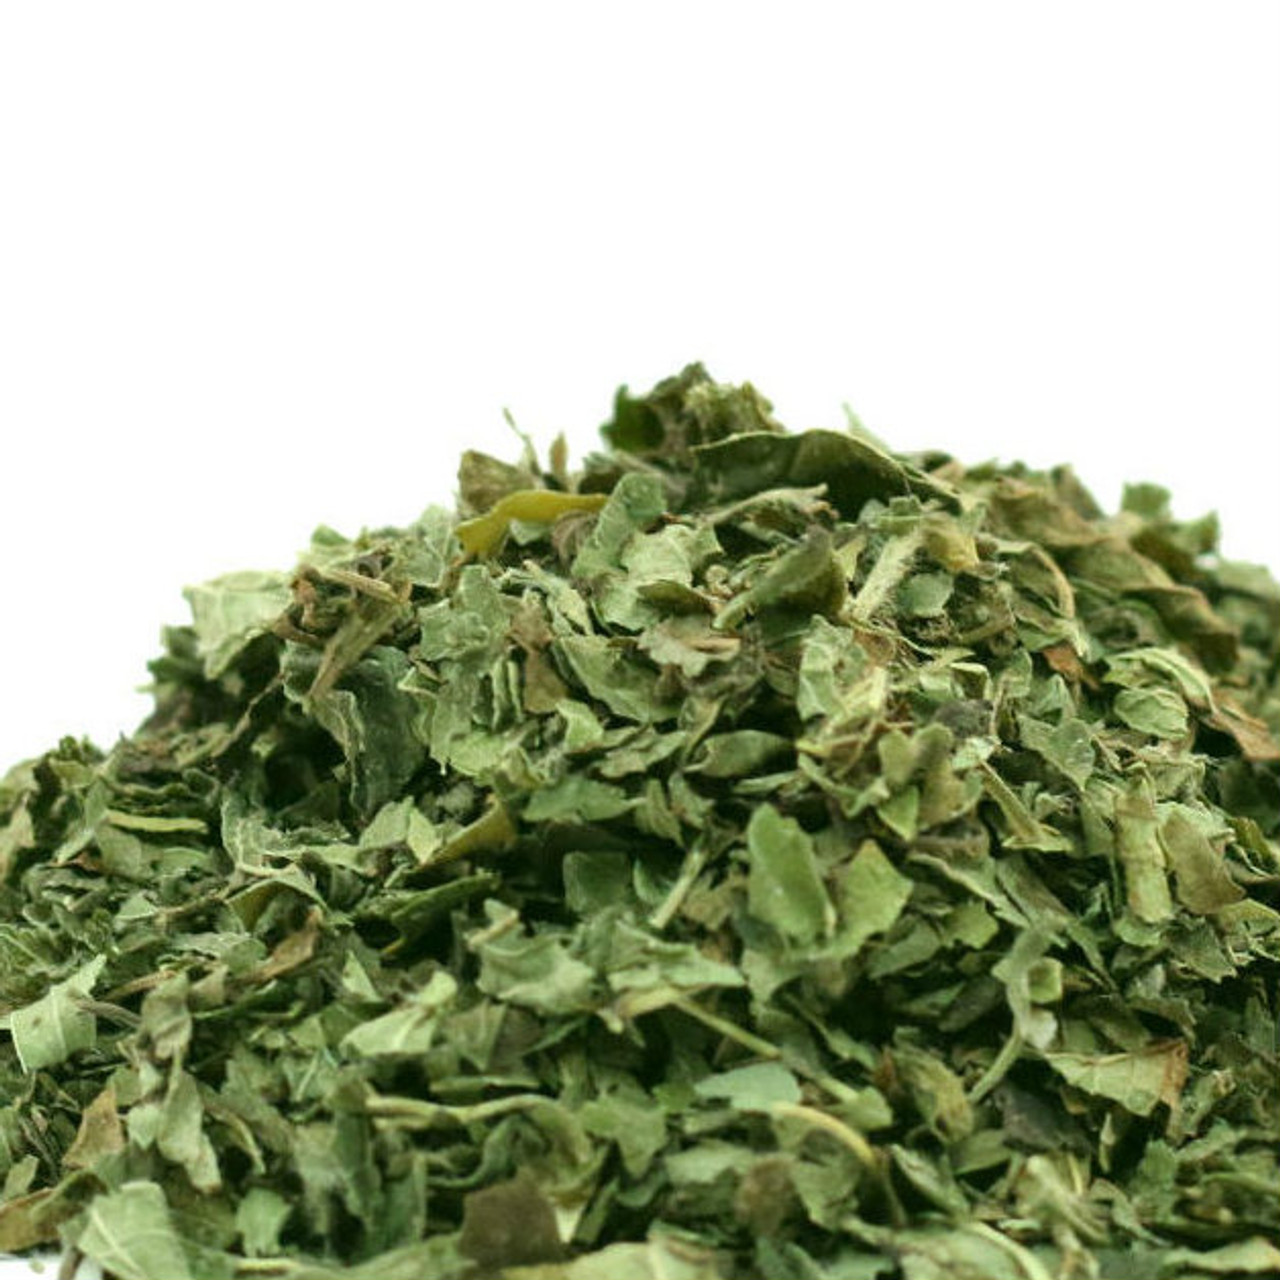 Used by ancient Greeks and Romans to alter the flavor of wine, lemon balm has a delicate lemony flavor. Use to sweeten jam, jellies, as an addition to salad, and as a flavoring for various fish and poultry dishes (and even liqueurs). It is also often used as a tea ingredient to add a crisp citrusy flavor.